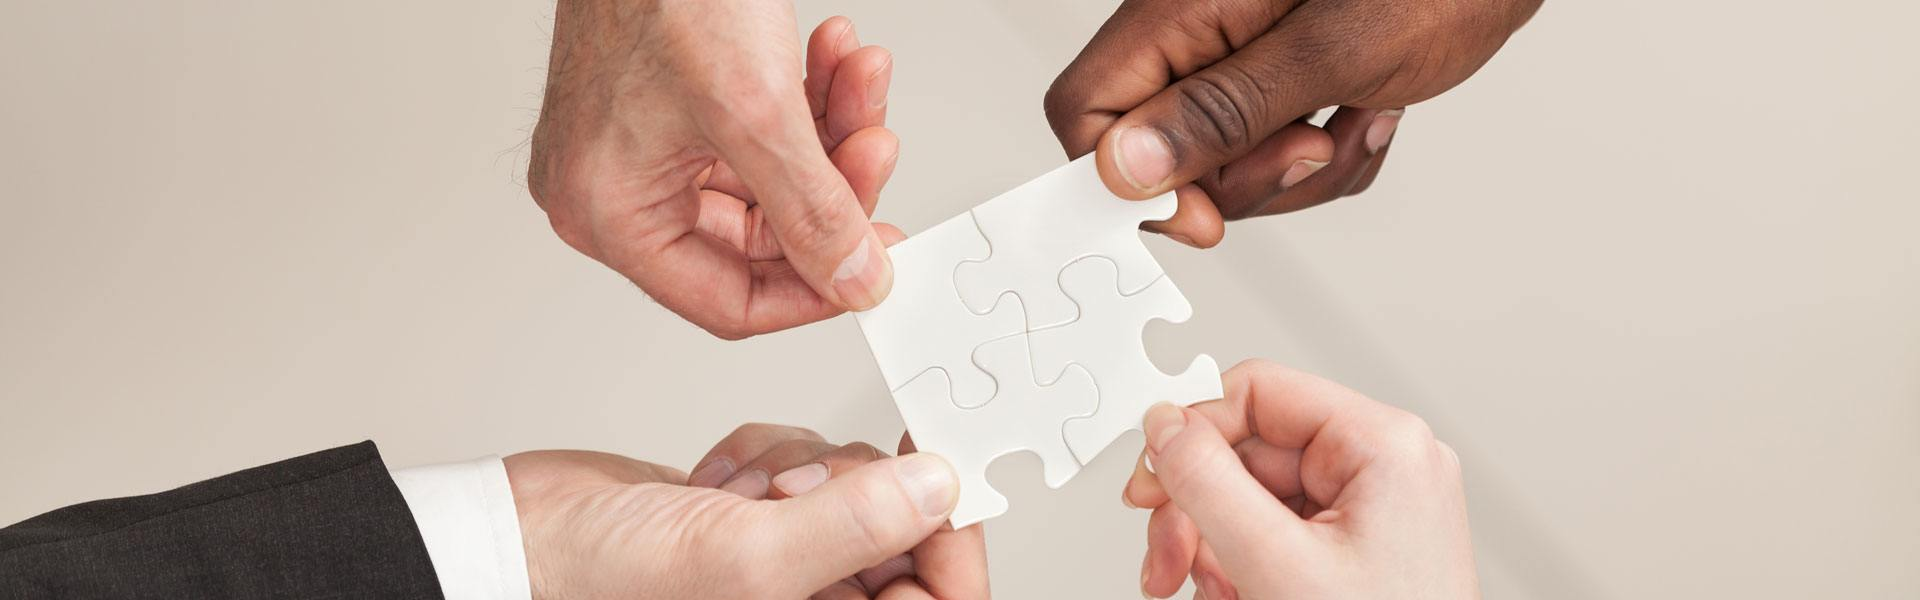 holding jigsaw pieces together